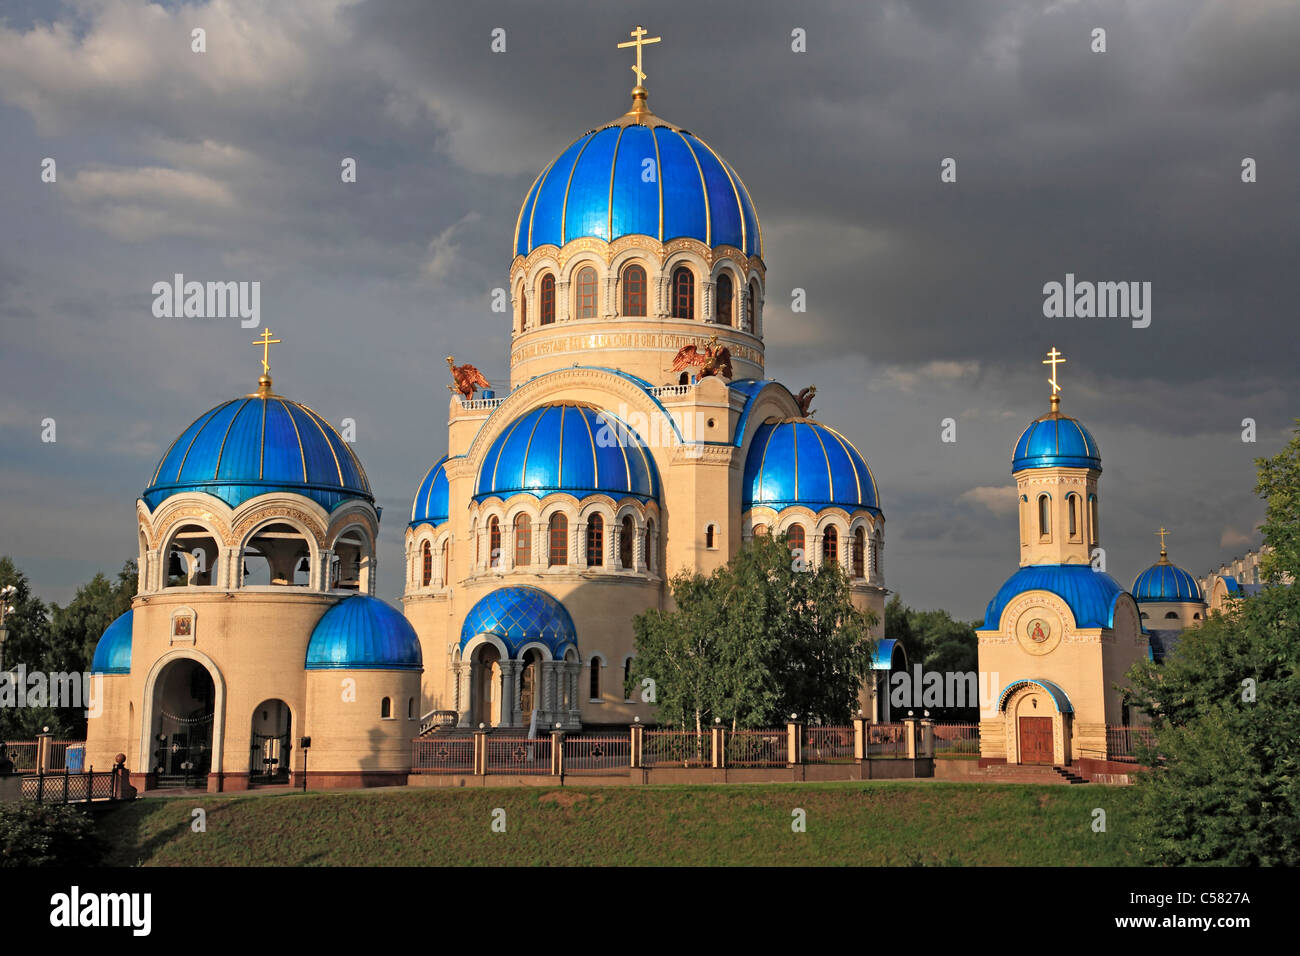 Europe, European, East Europe, Eastern Europe, Russia, Russian, Architecture, building, City, Town, Moscow, Church, - Stock Image